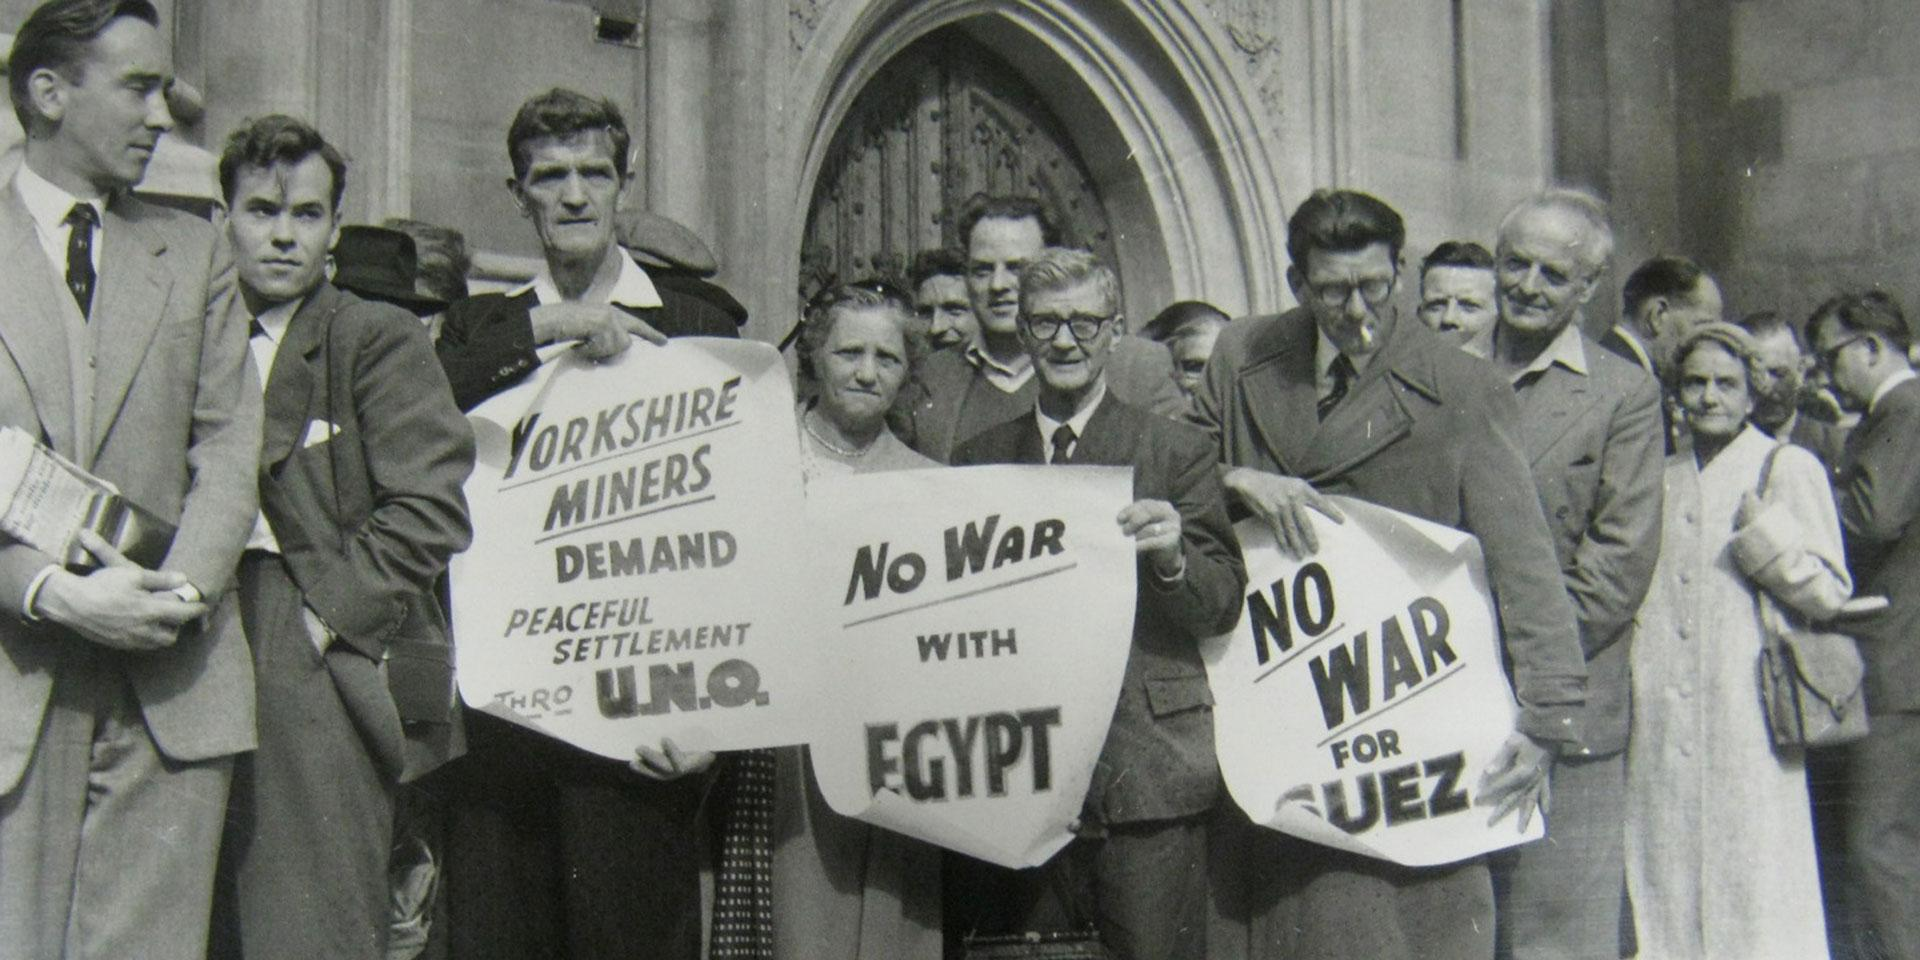 Anti-war protesters outside Parliament, September 1956